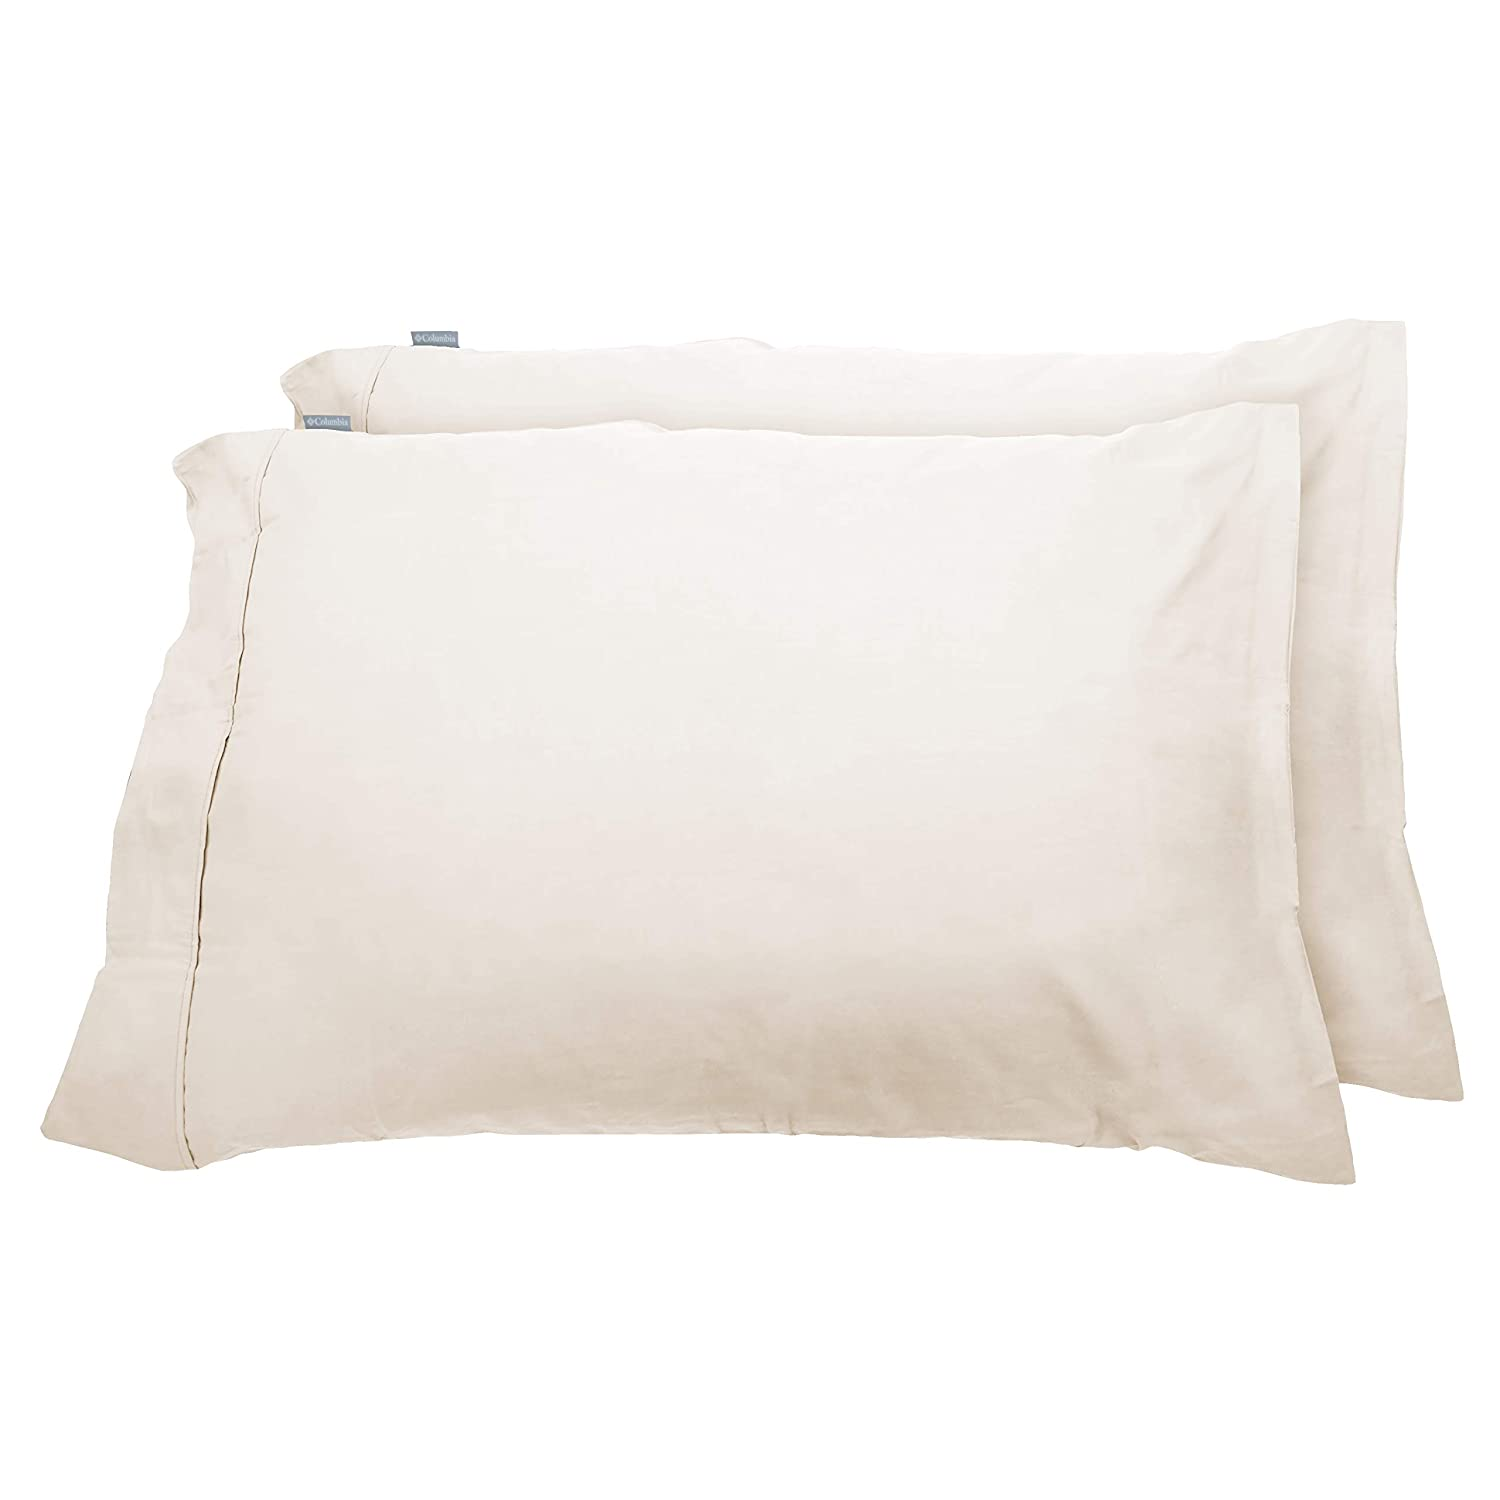 Columbia Moisture Wicking Temperature Regulating Pillowcases, 2-Piece (Ivory)